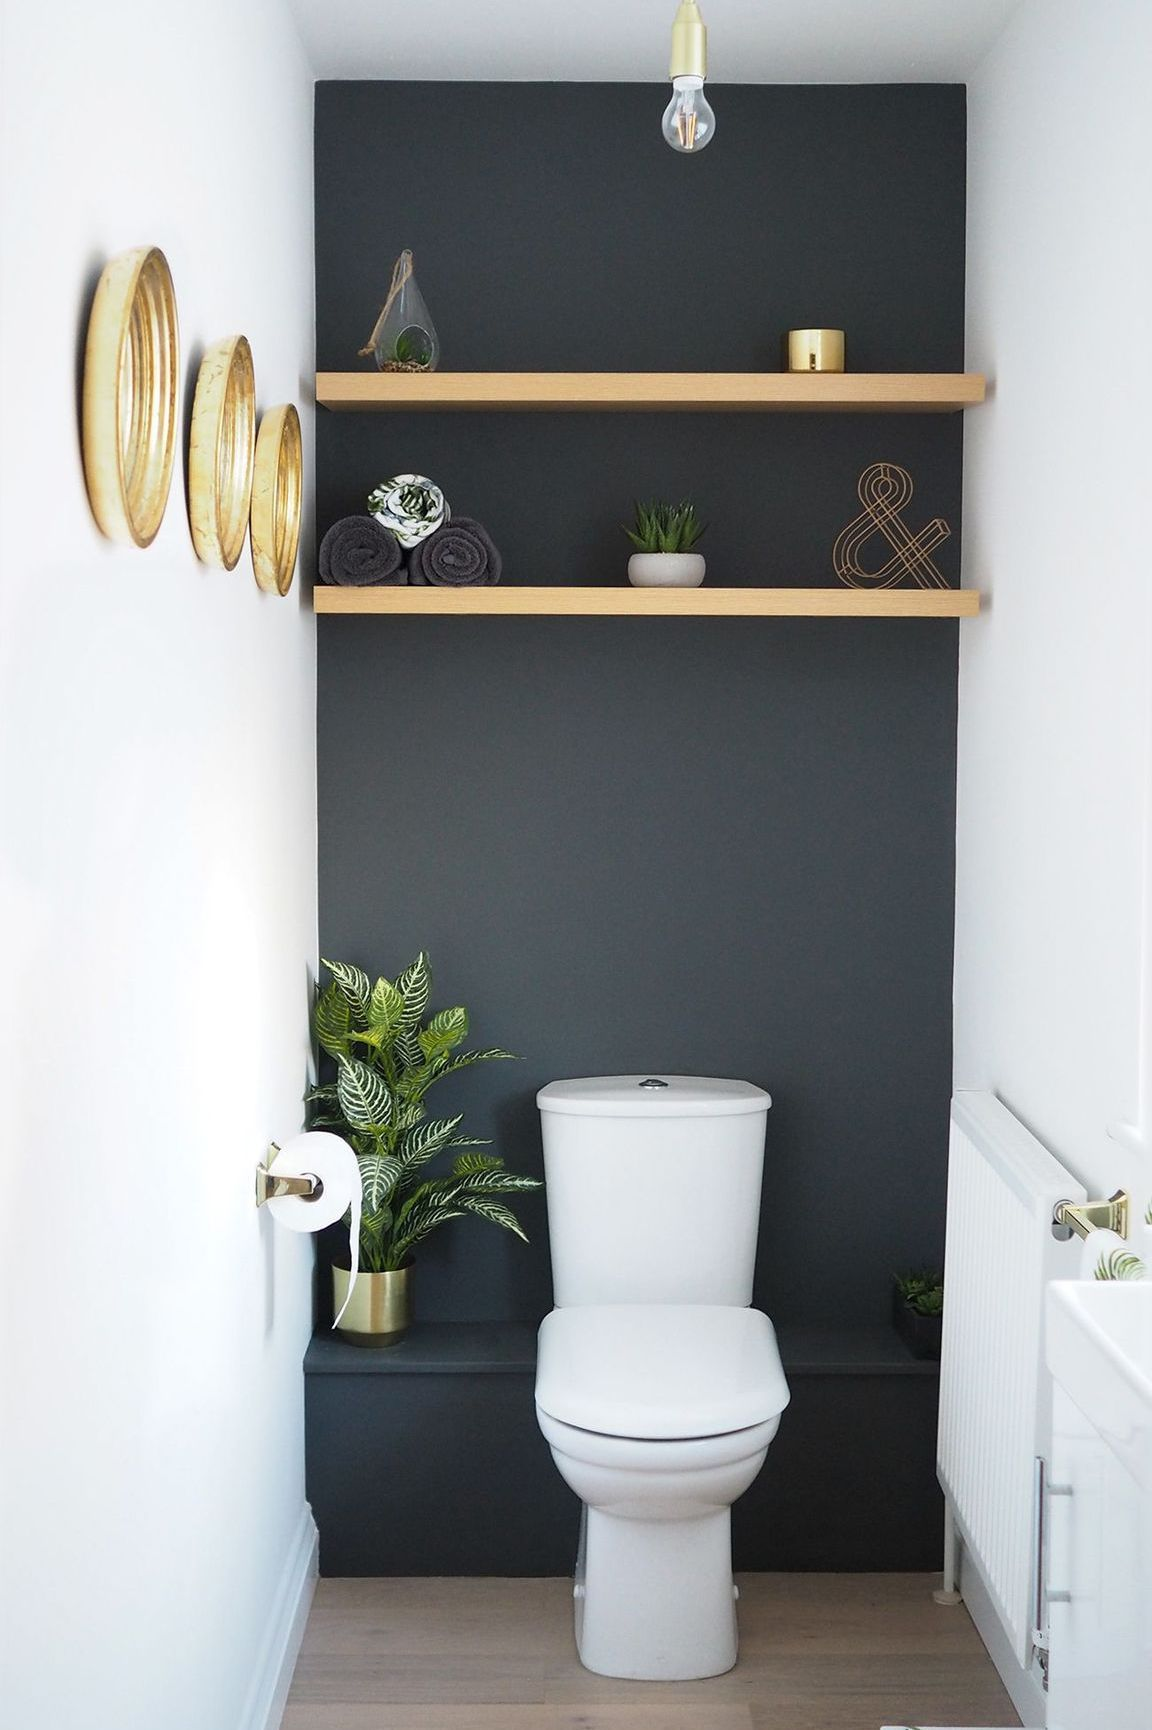 rangement wc id es pratiques pour toilettes. Black Bedroom Furniture Sets. Home Design Ideas